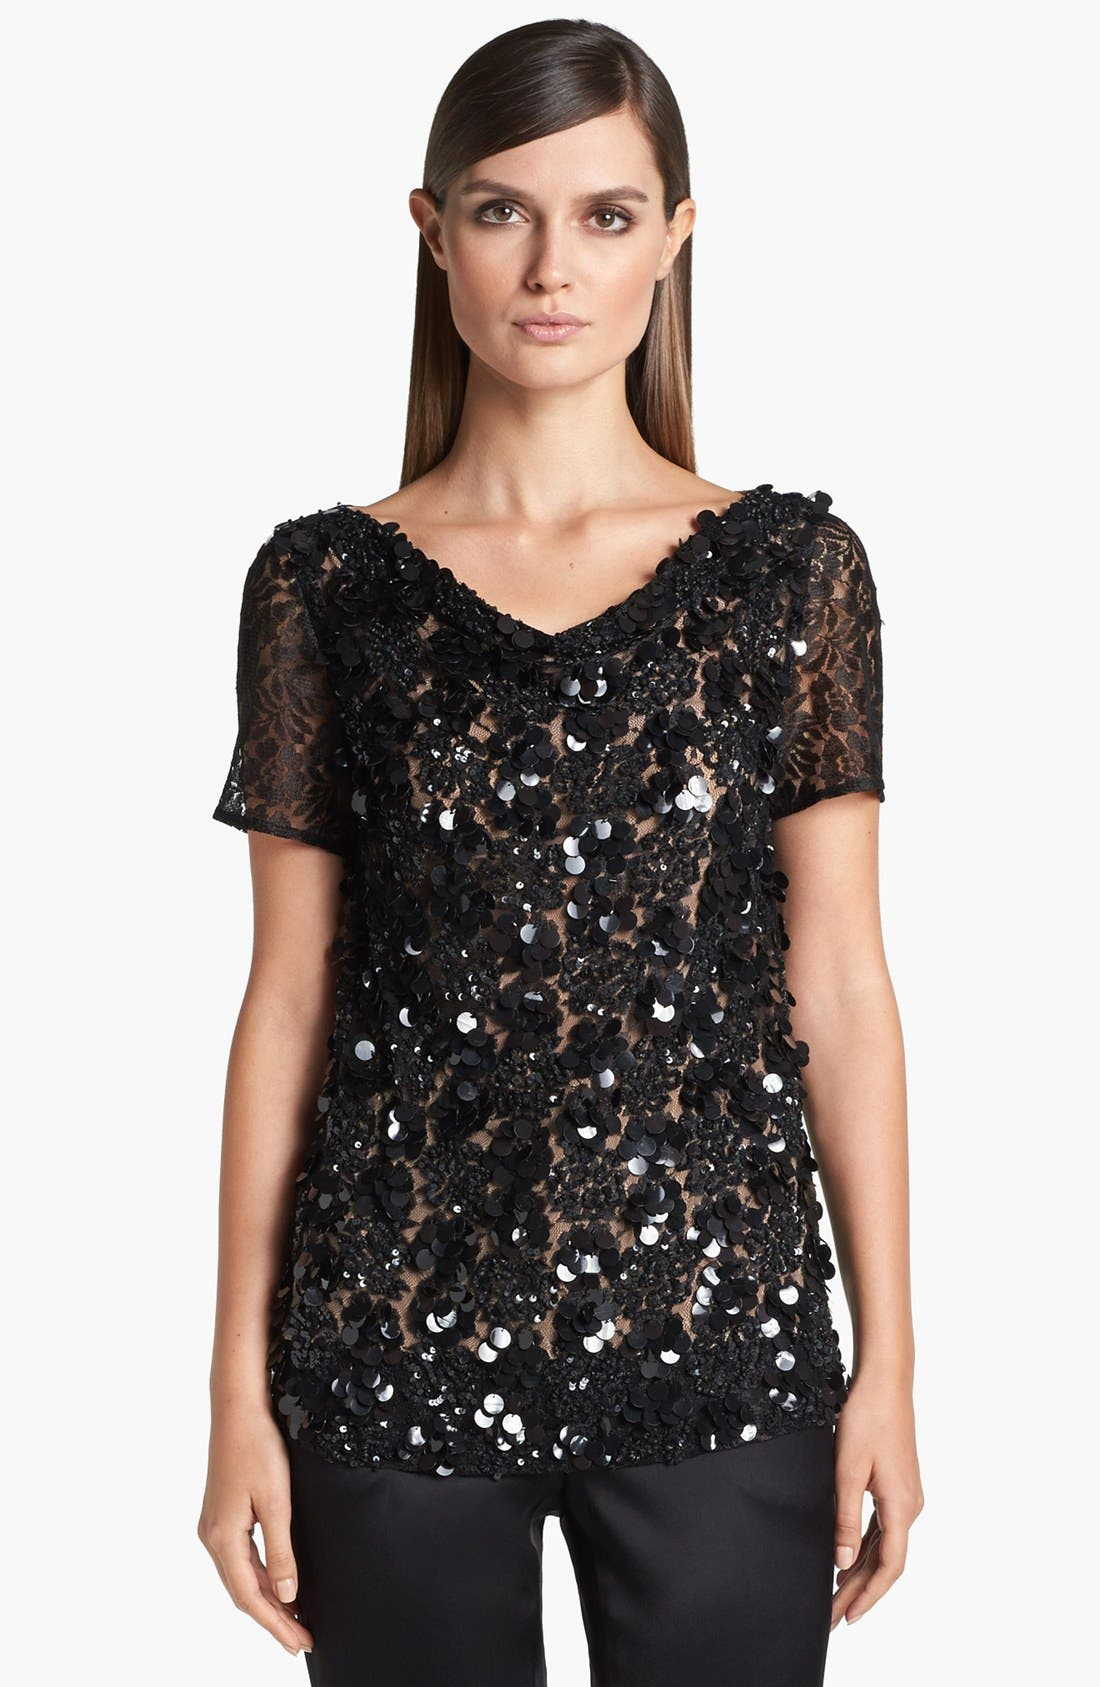 Alternate Image 1 Selected - St. John Collection Cowl Neck Beaded Lace Top